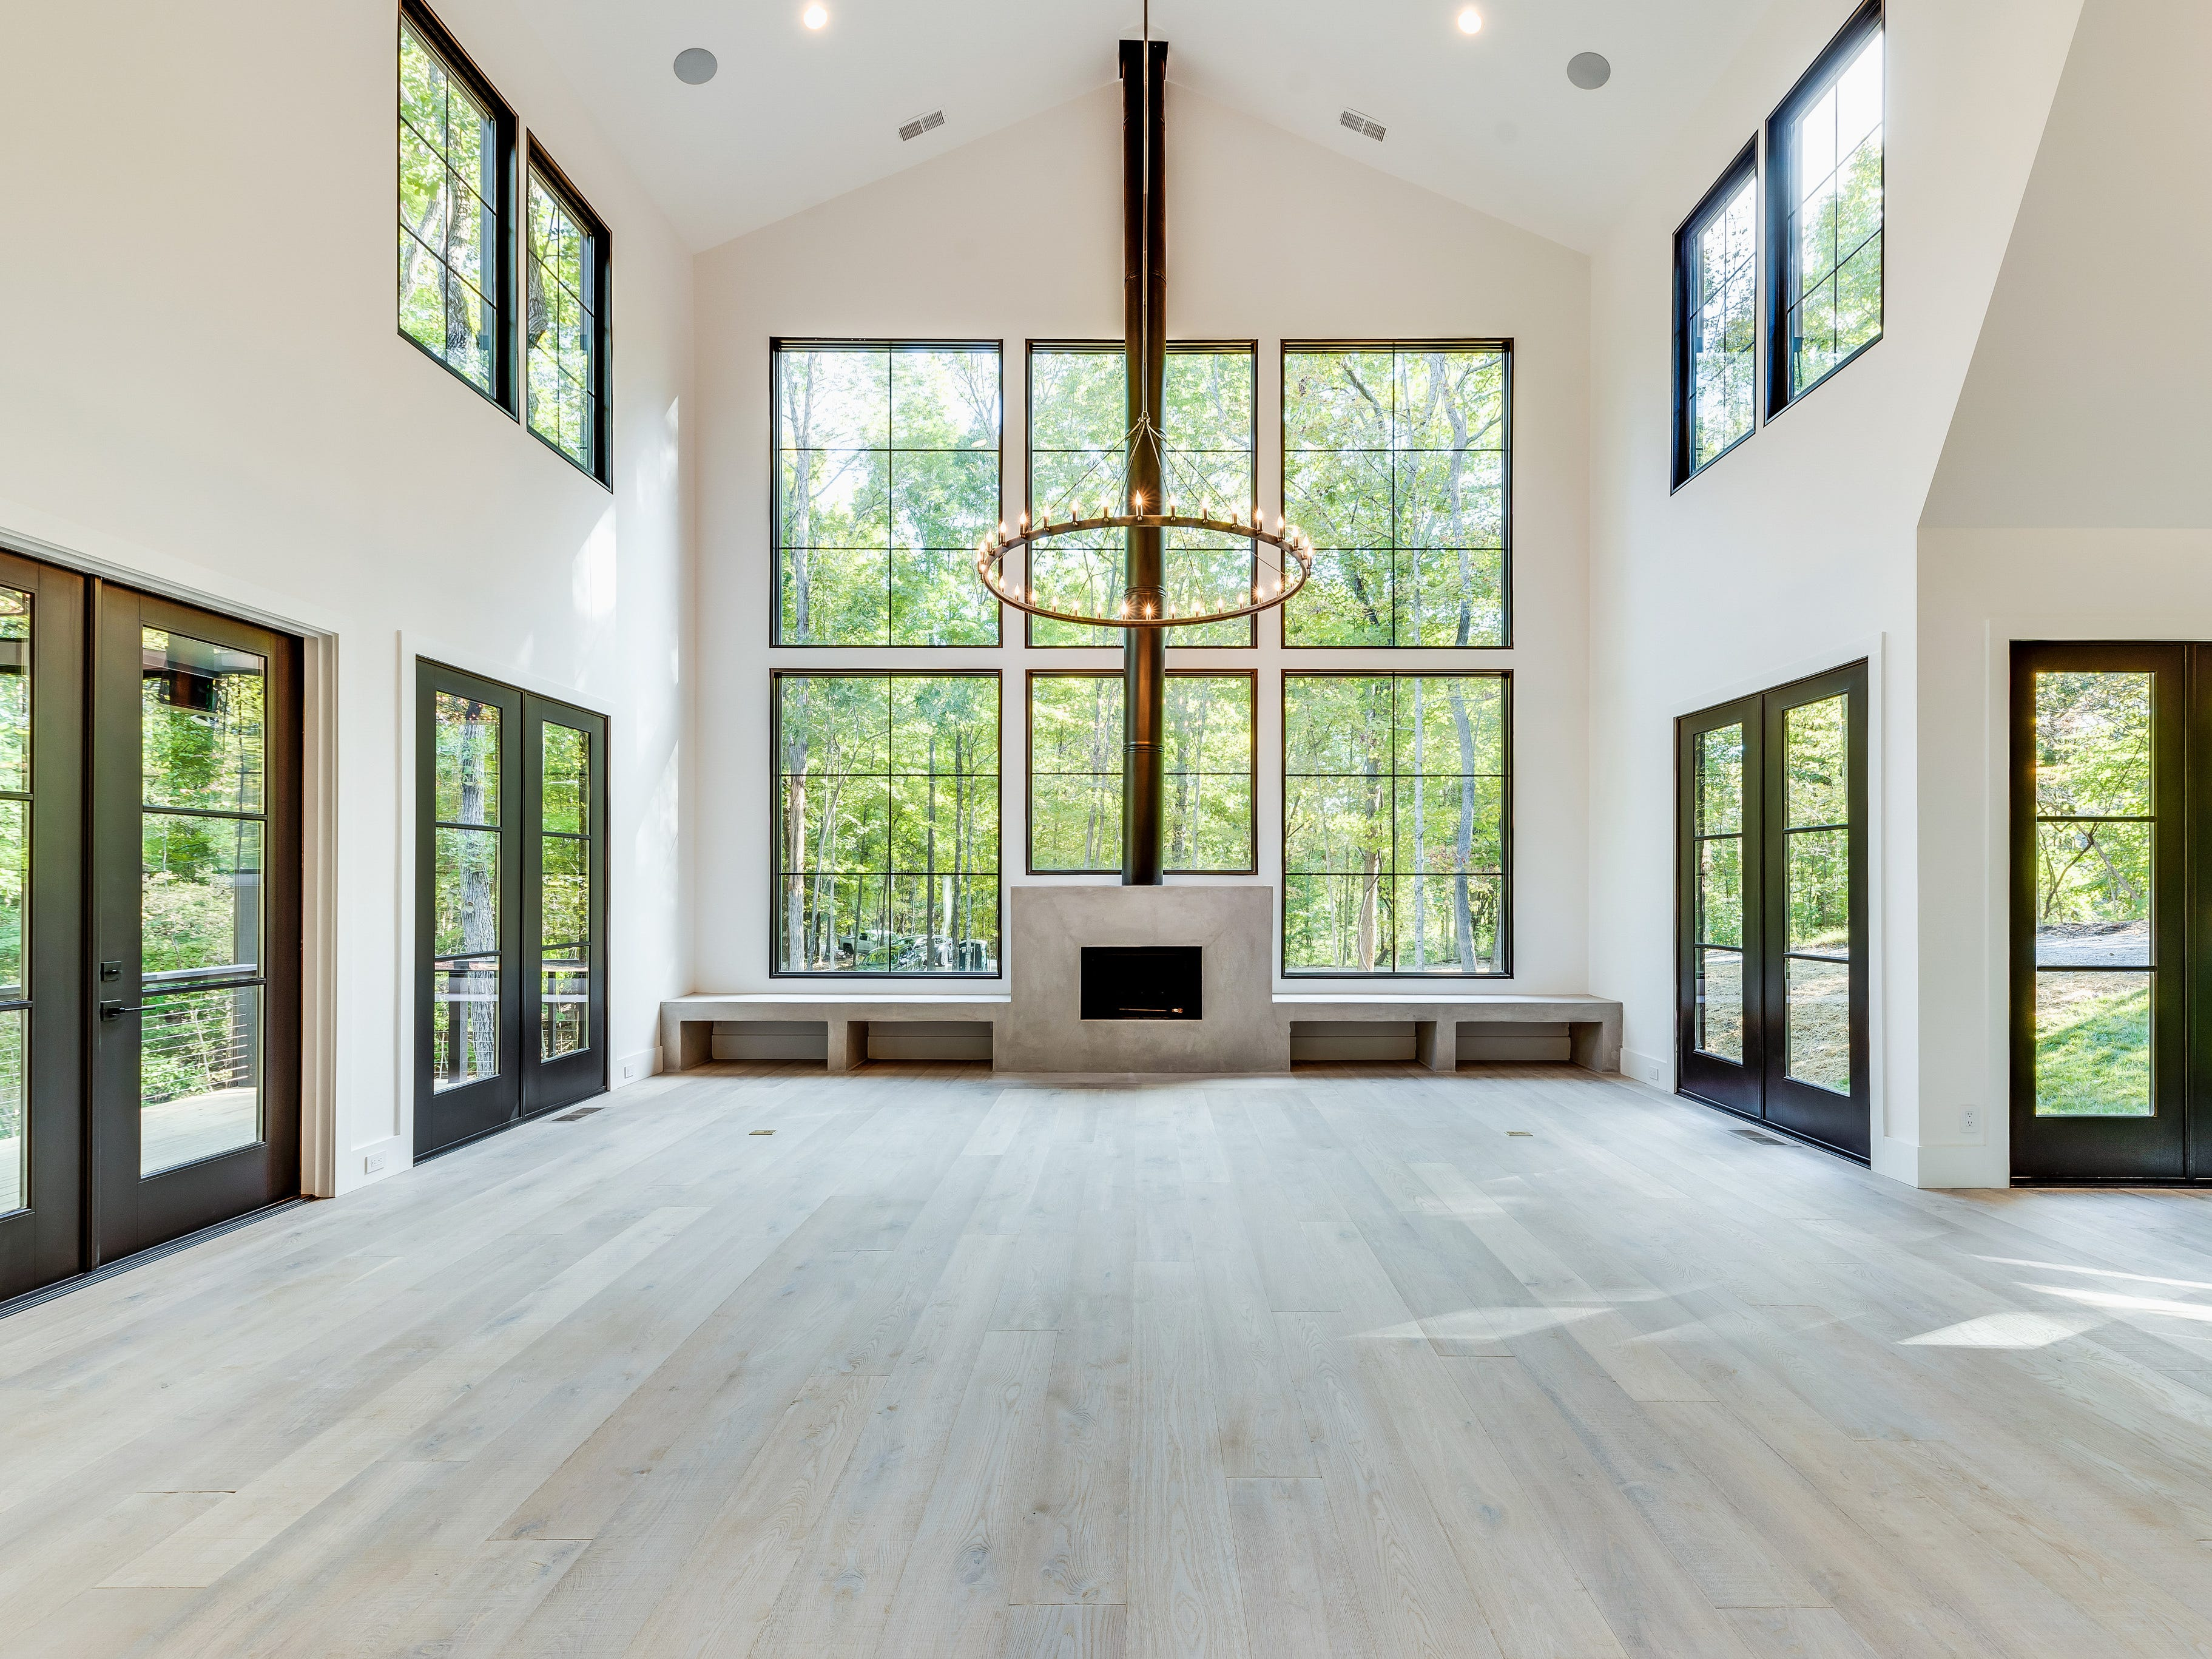 The back of this modern farmhouse features a wall of windows to let in sunlight and show off the beautiful wooded surroundings of this home.